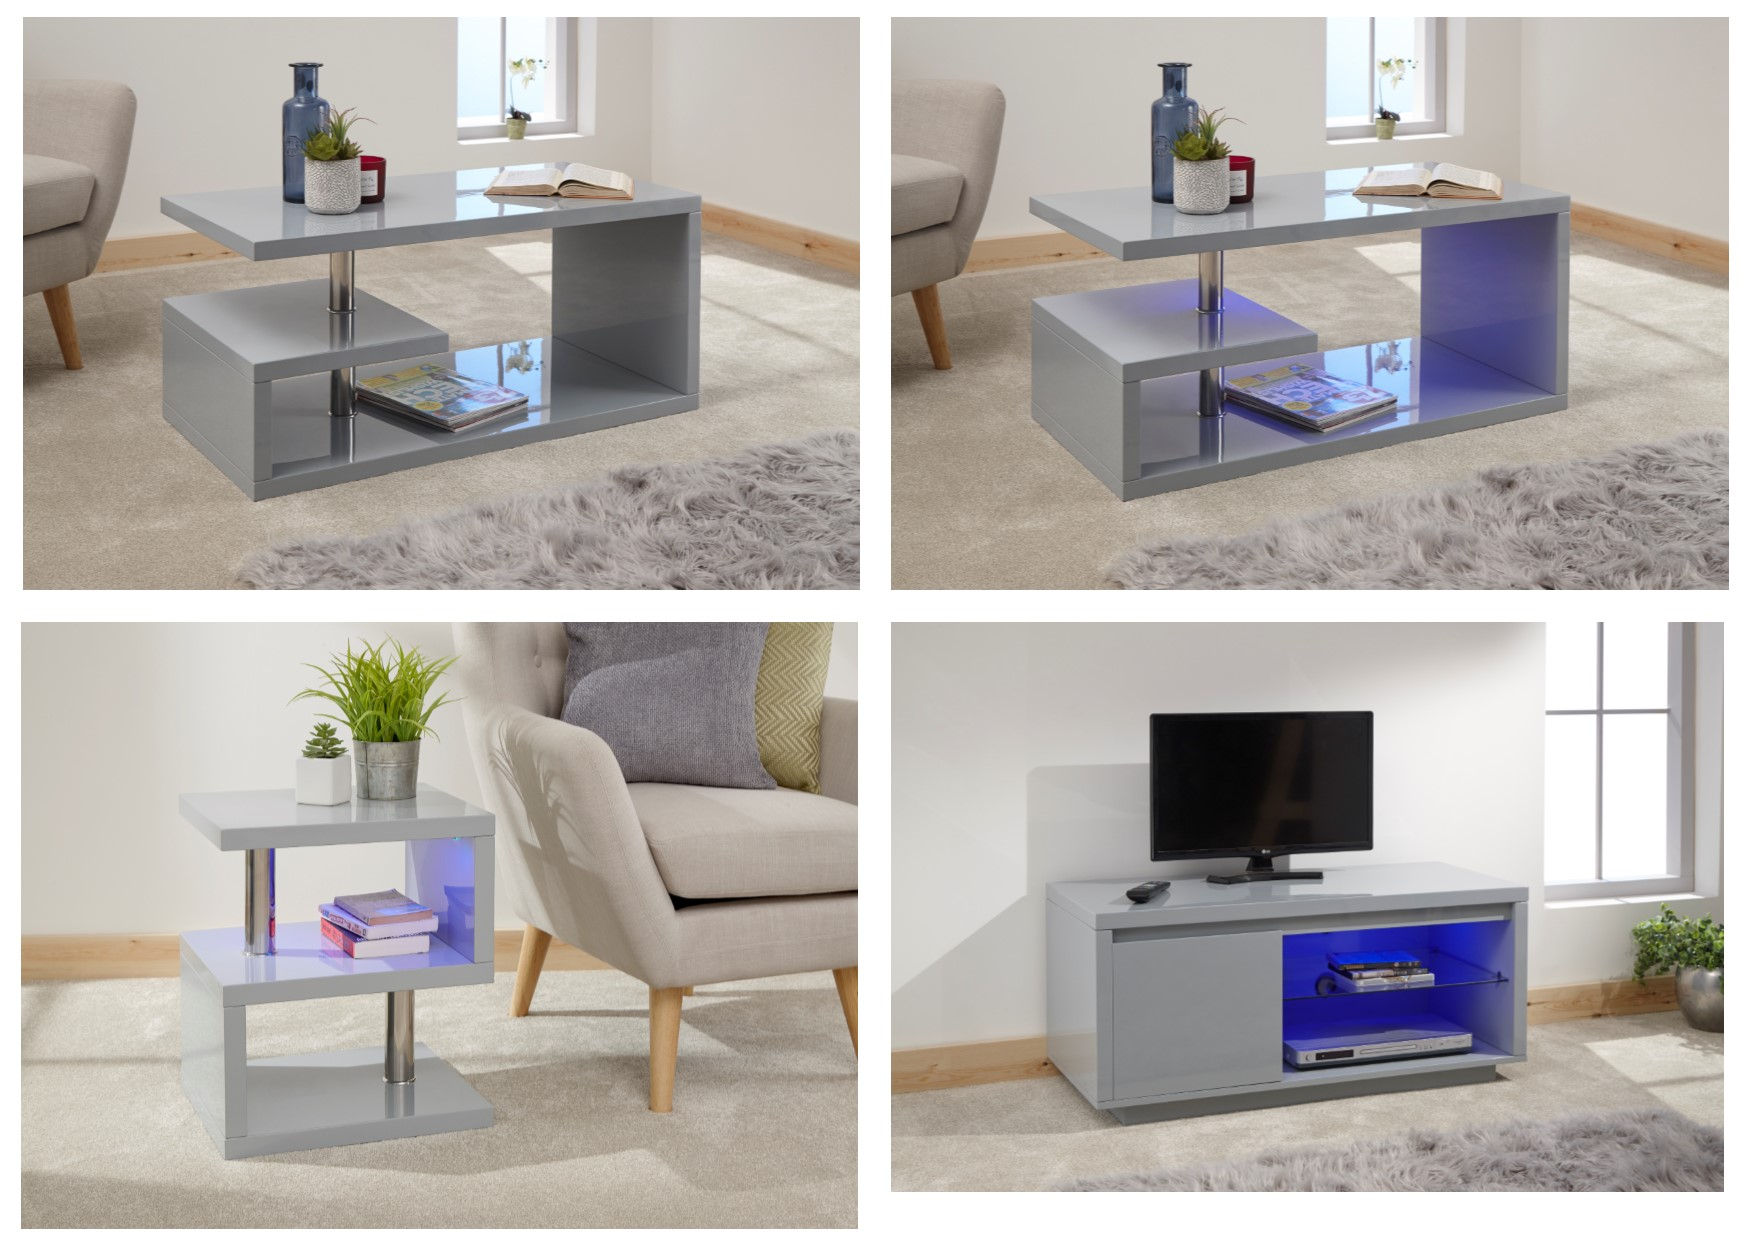 Details About Polar Grey Modern Led Lit High Gloss Coffee Table Sideboard Tv Units